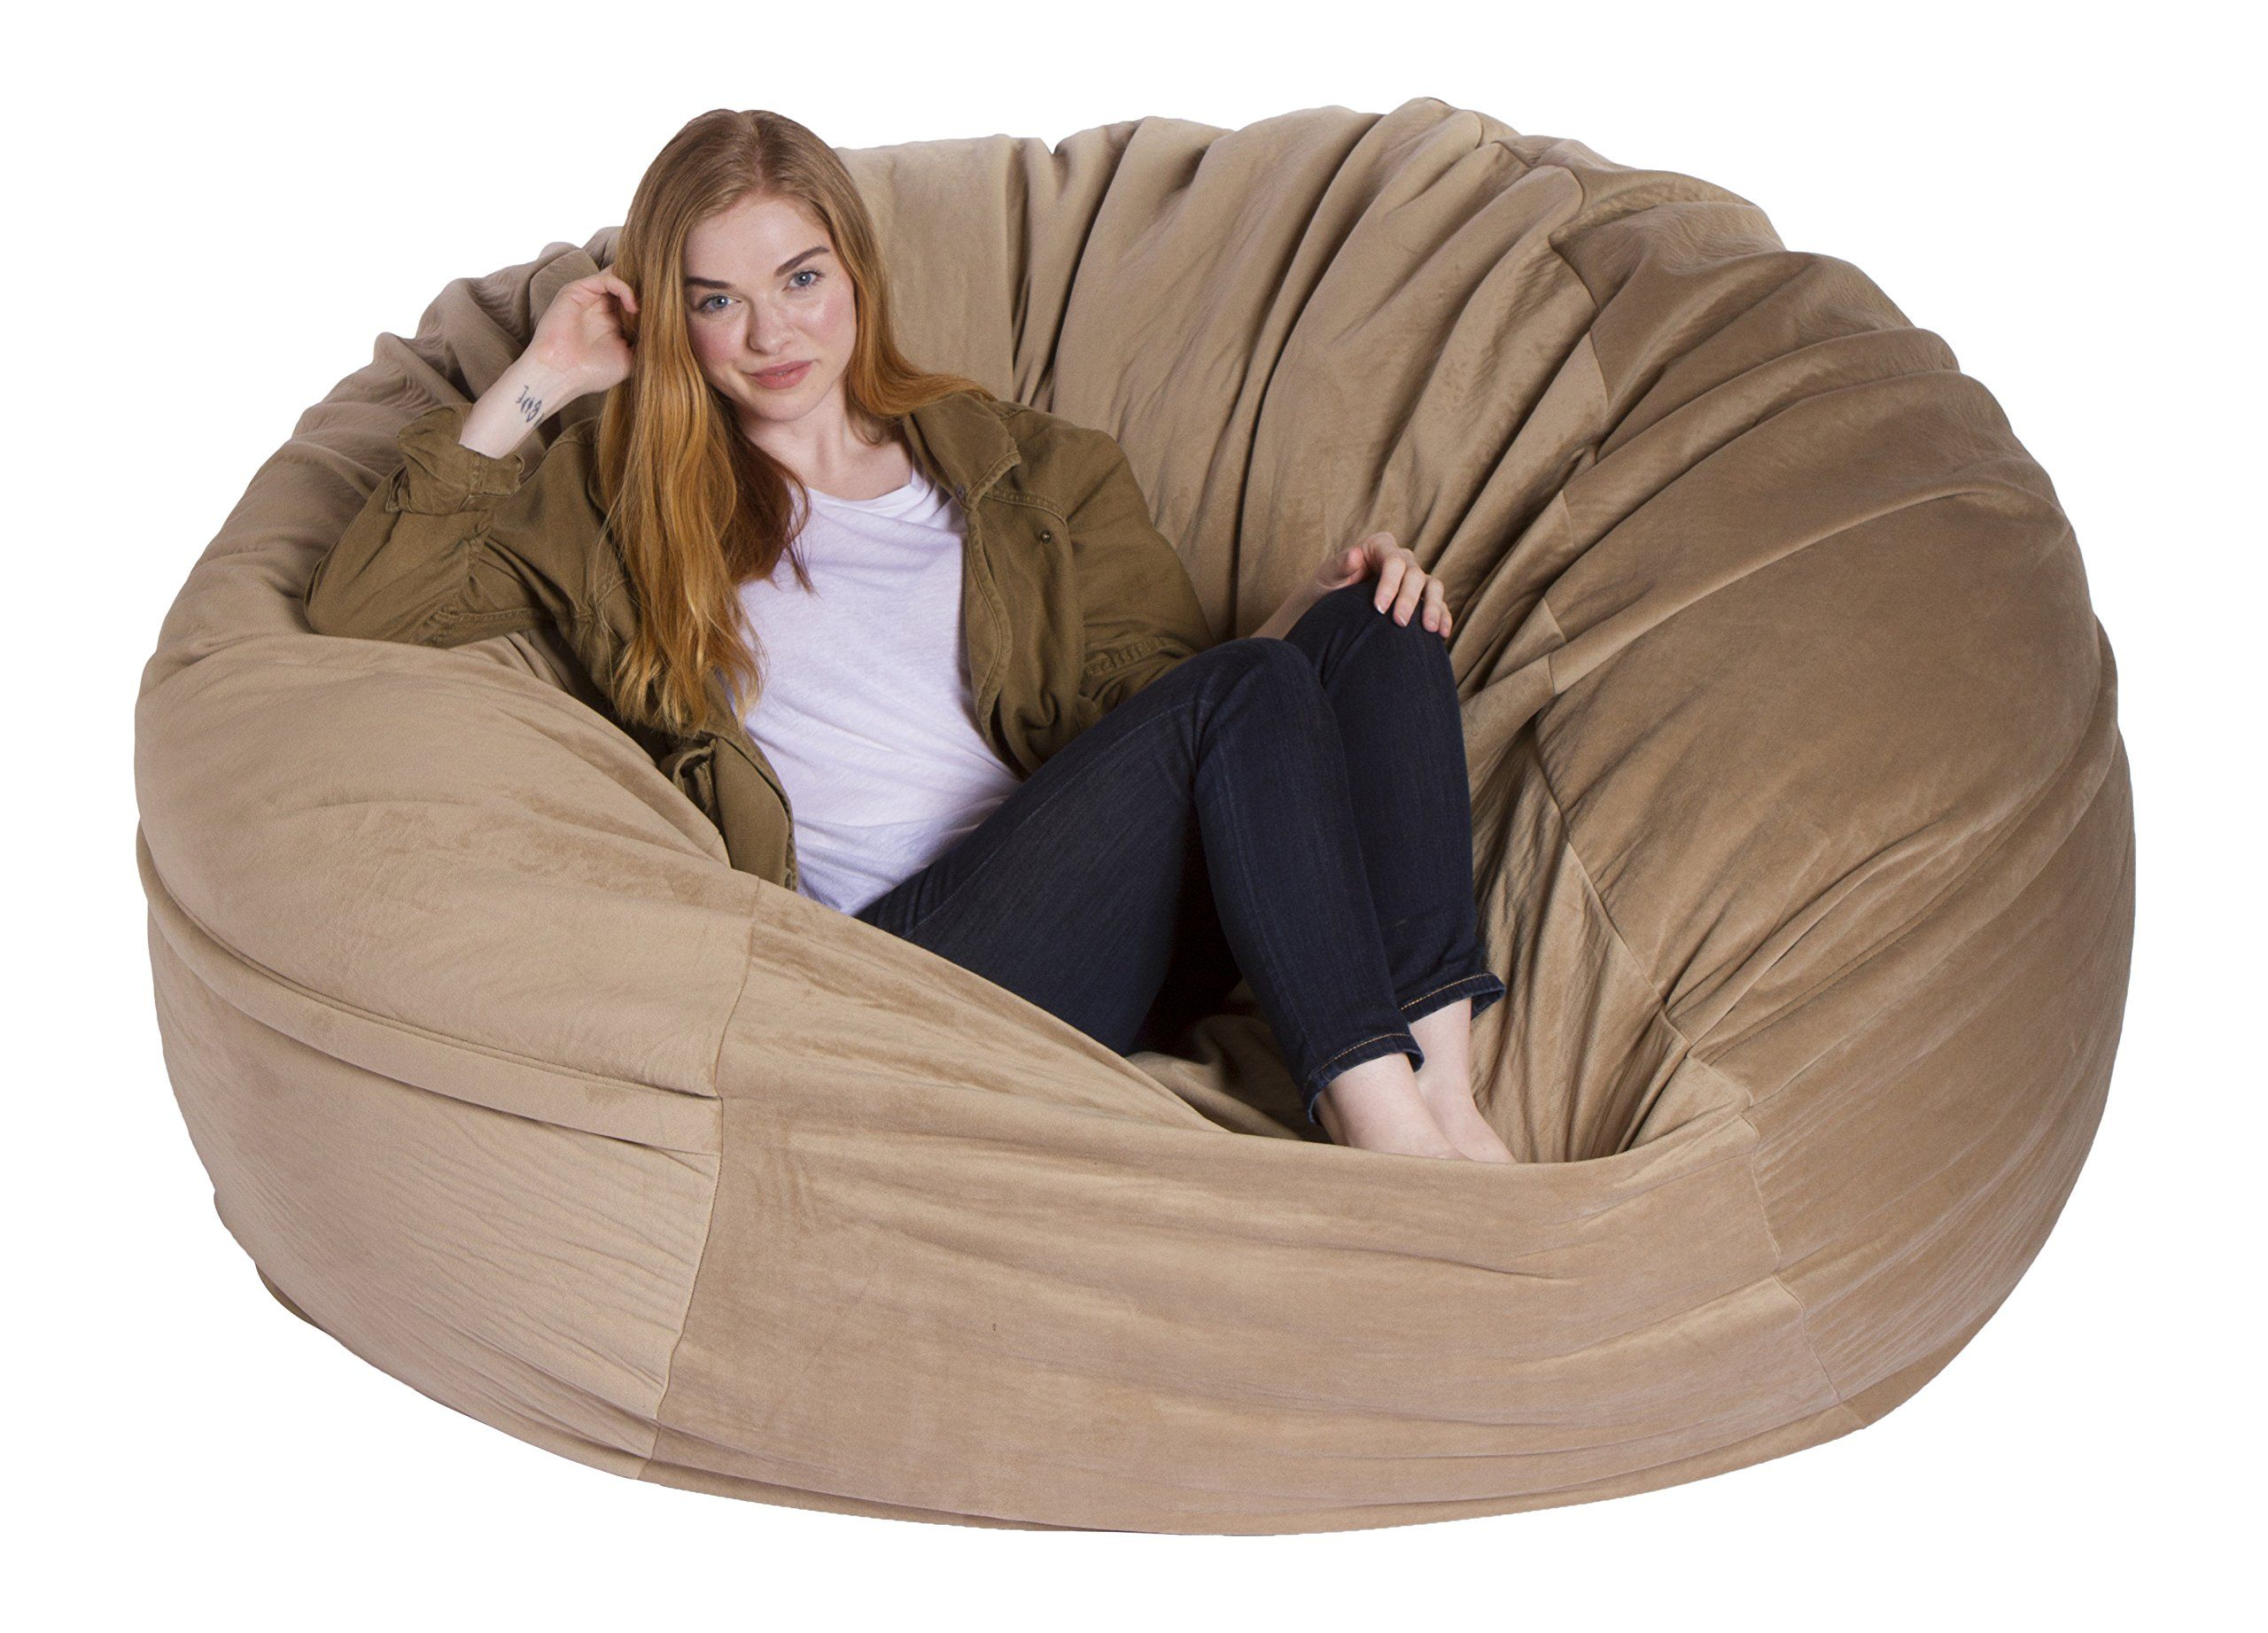 Astounding Giant Bean Bag Chairs Premium Foamfilled Lounge Sac Want Onthecornerstone Fun Painted Chair Ideas Images Onthecornerstoneorg